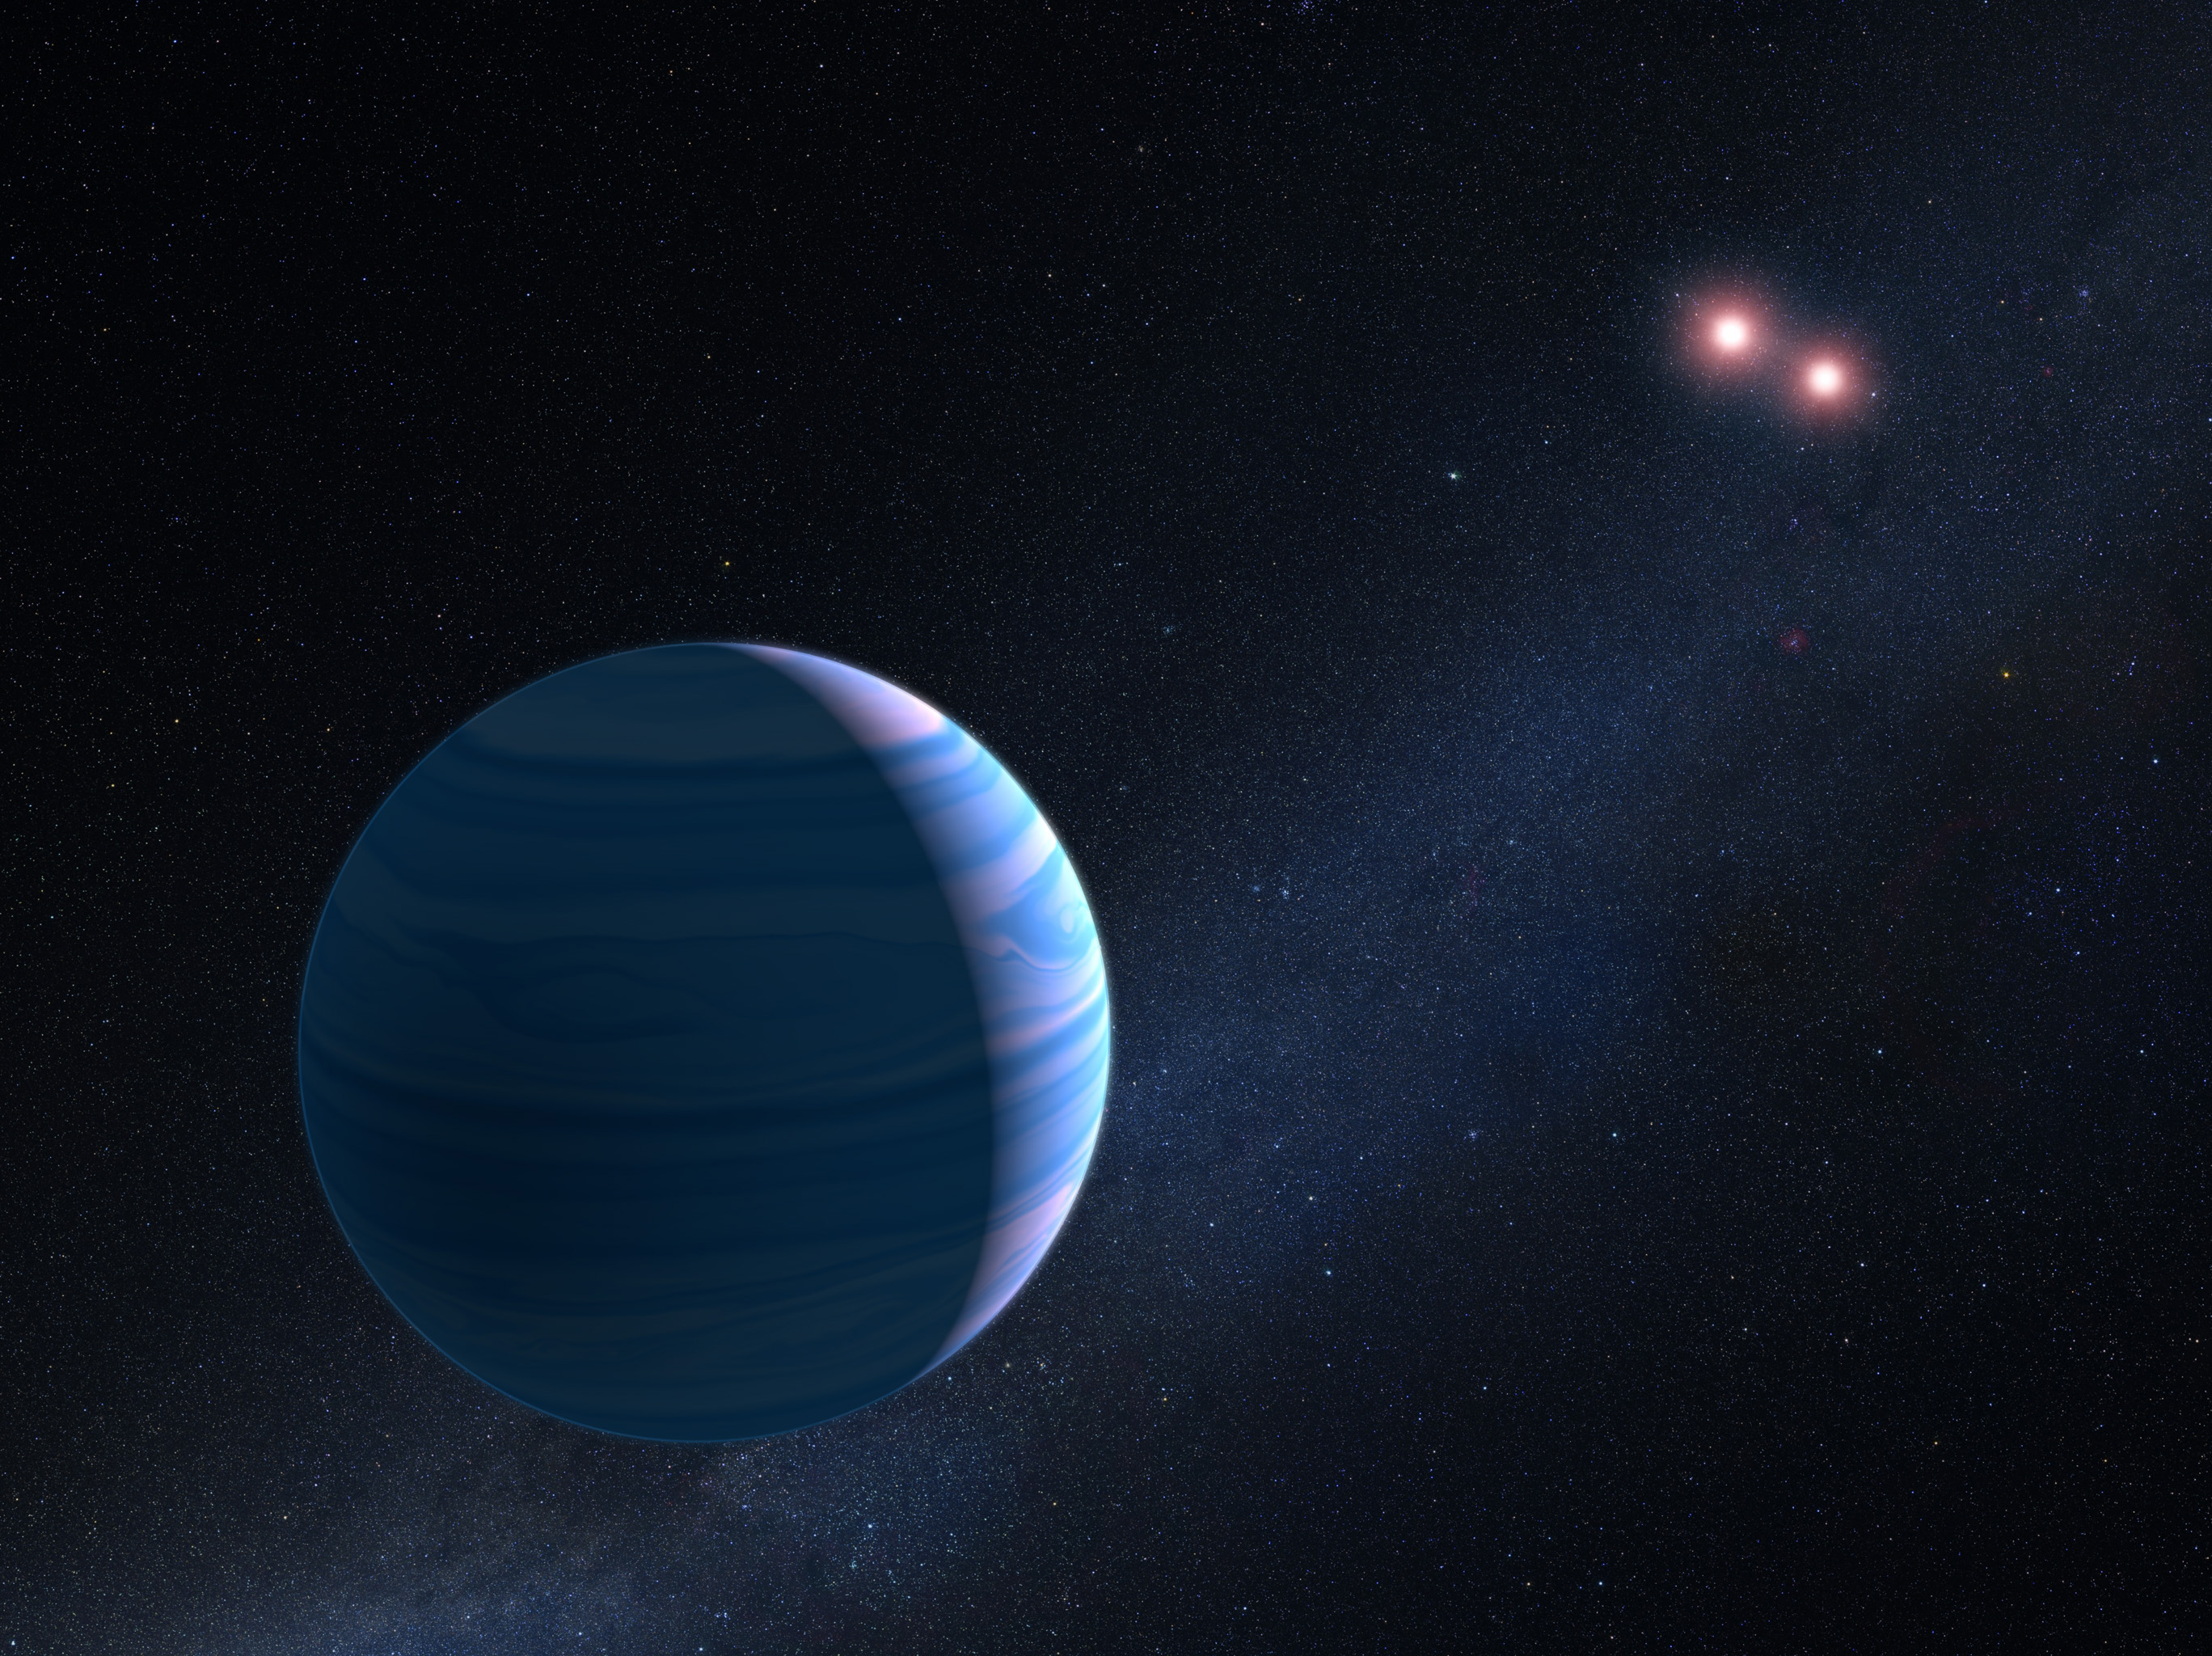 Scientists discover a large planet orbiting two stars